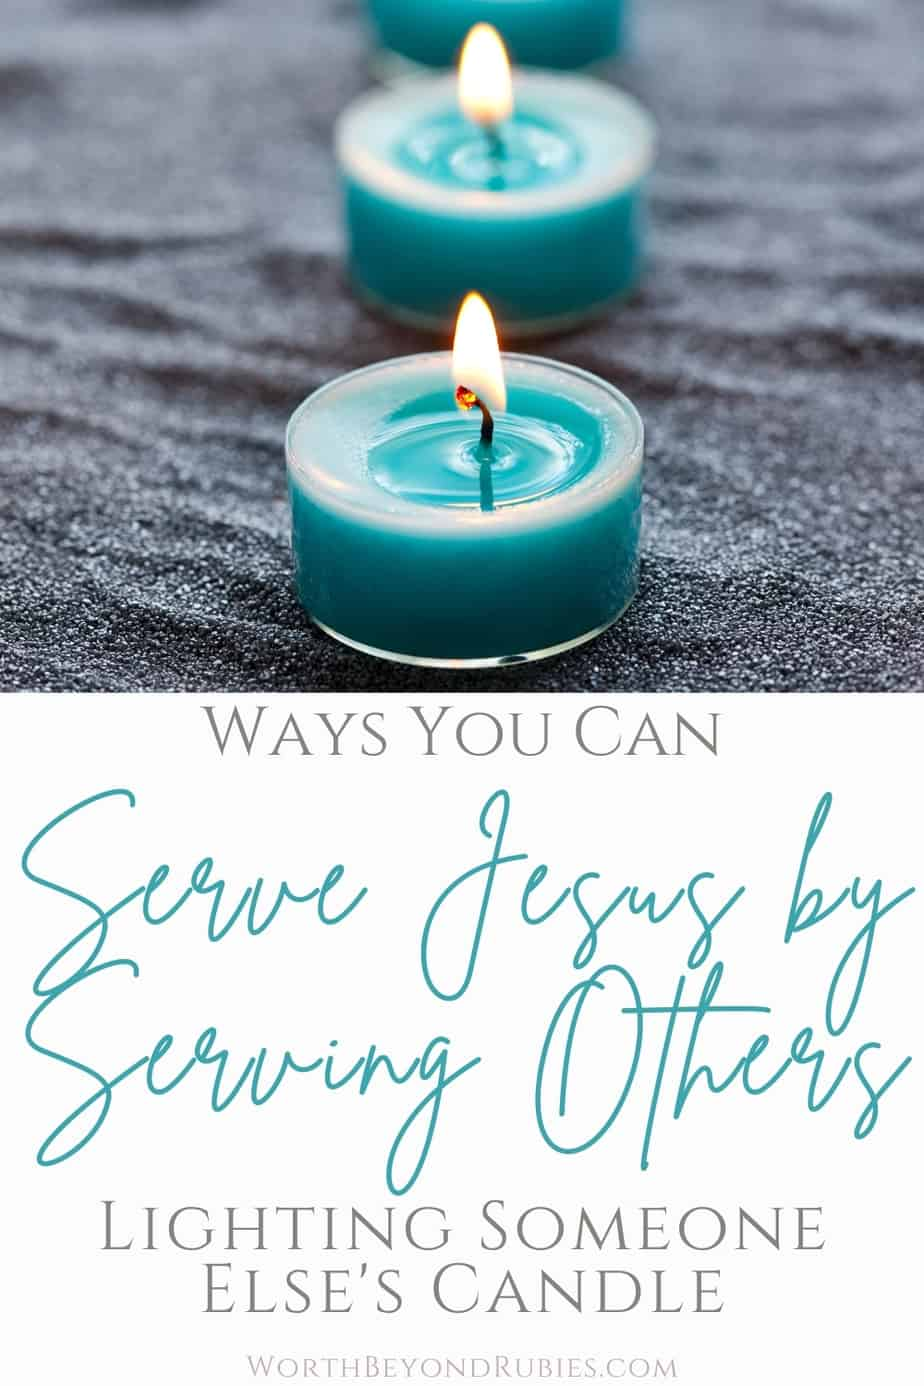 An image of blue tealight candles in black sand and text that says Ways You Serve Jesus by Serving Others - Lighting Someone Else's Candle